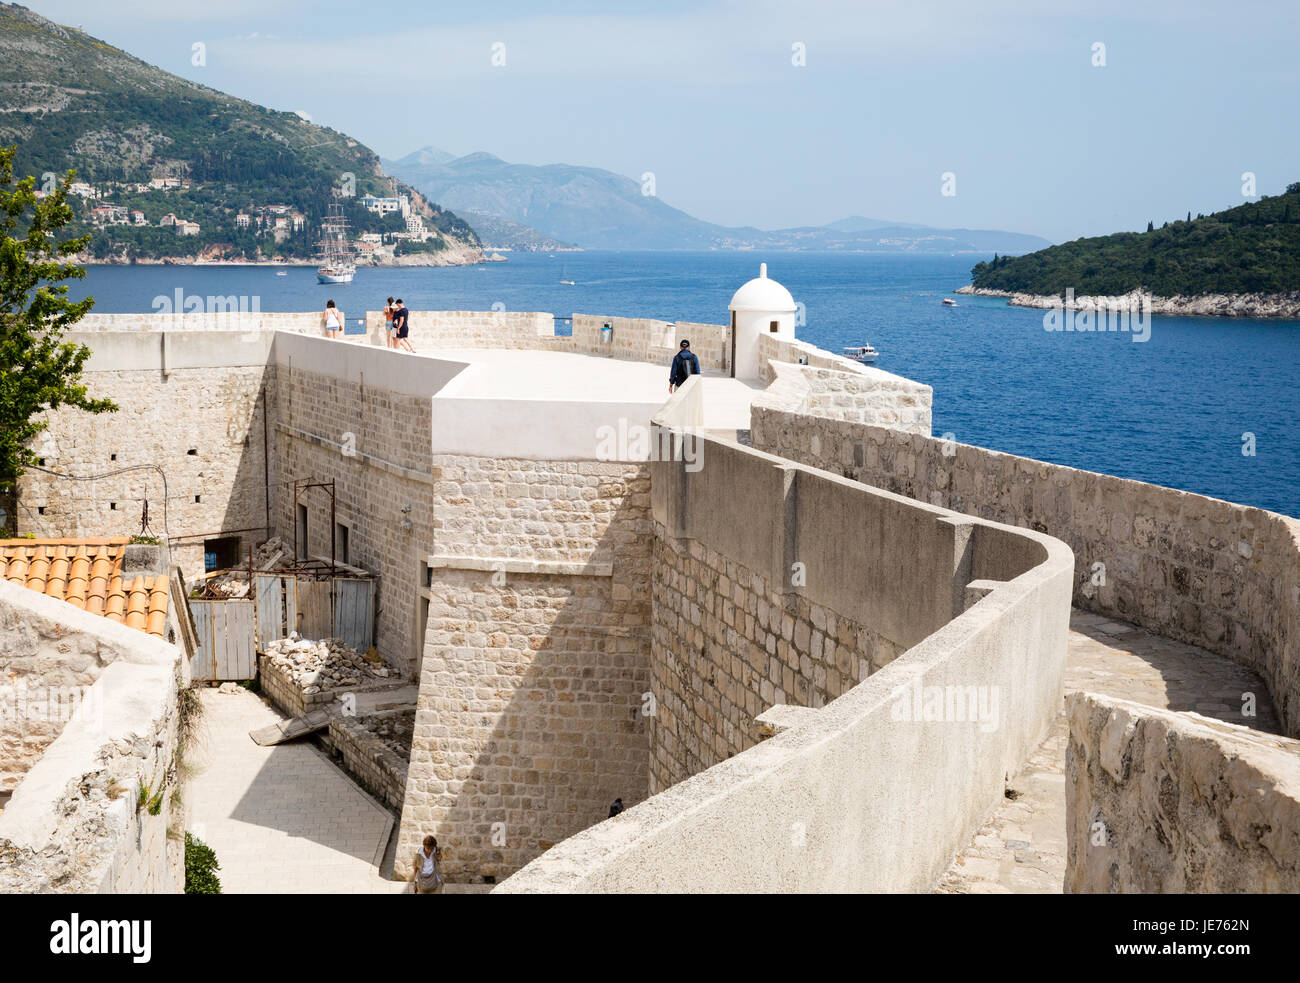 Lookout turret tower and cafe on the city walls of Dubrovnik on the Dalmatian Coast of Croatia - Stock Image